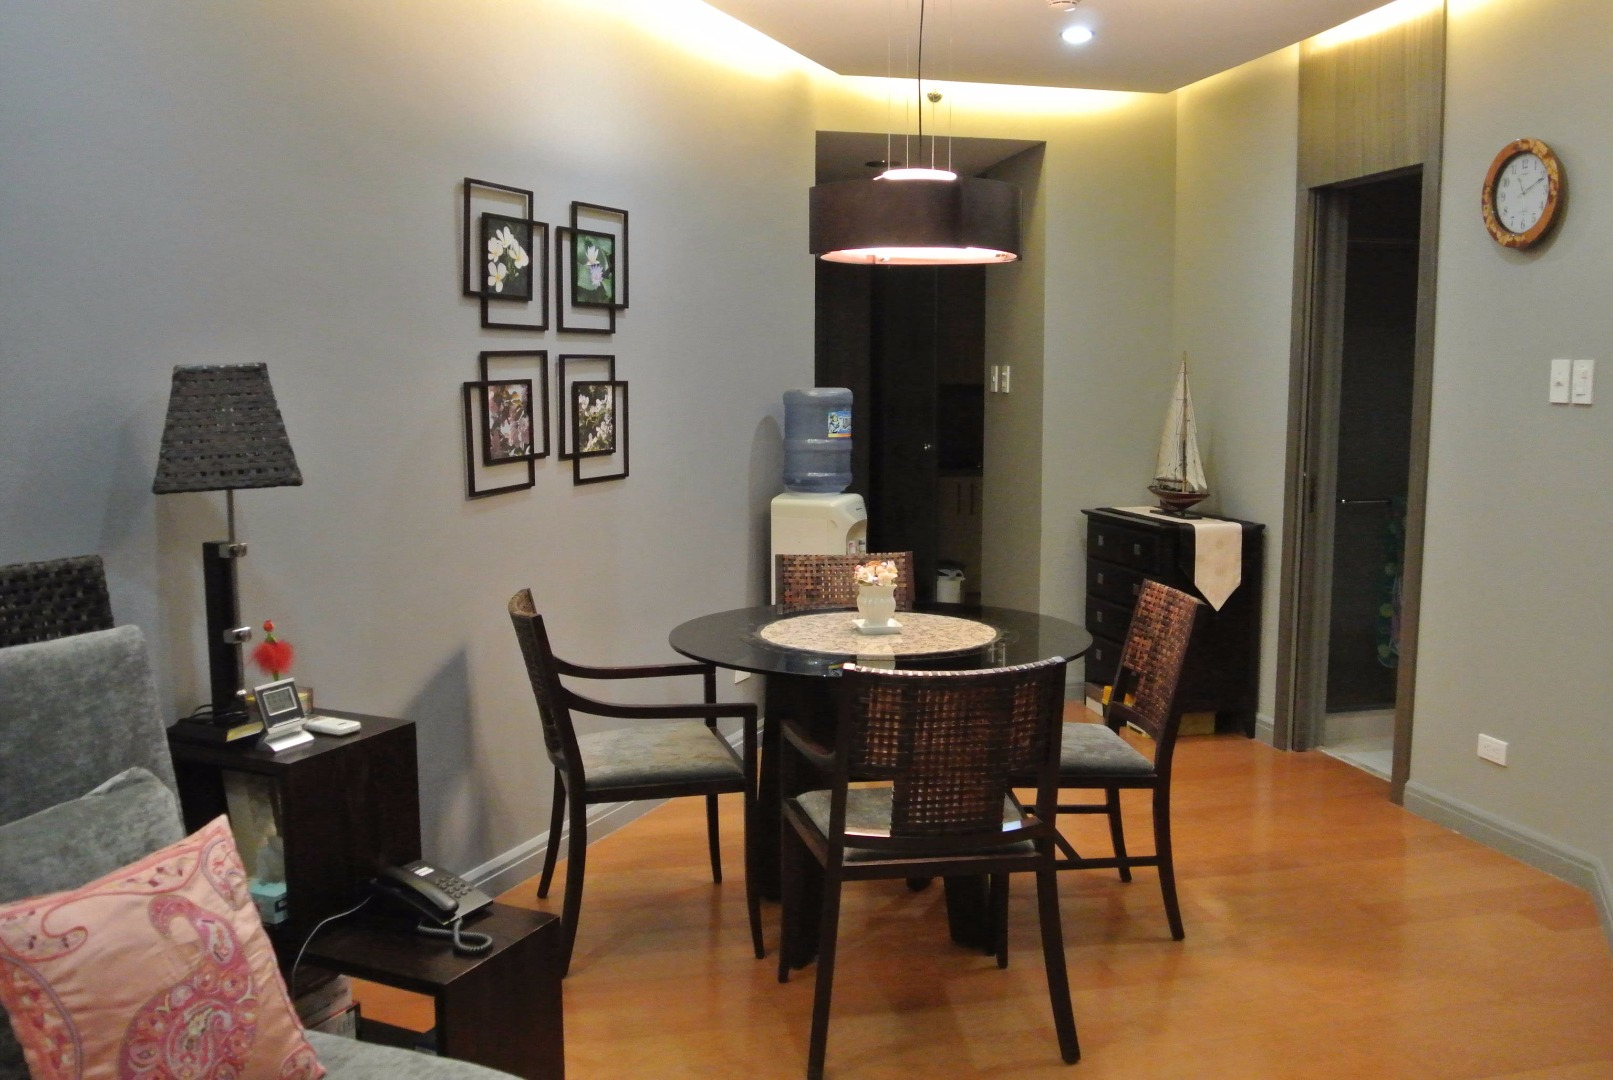 For sale 1 bedroom One Rockwell condo East